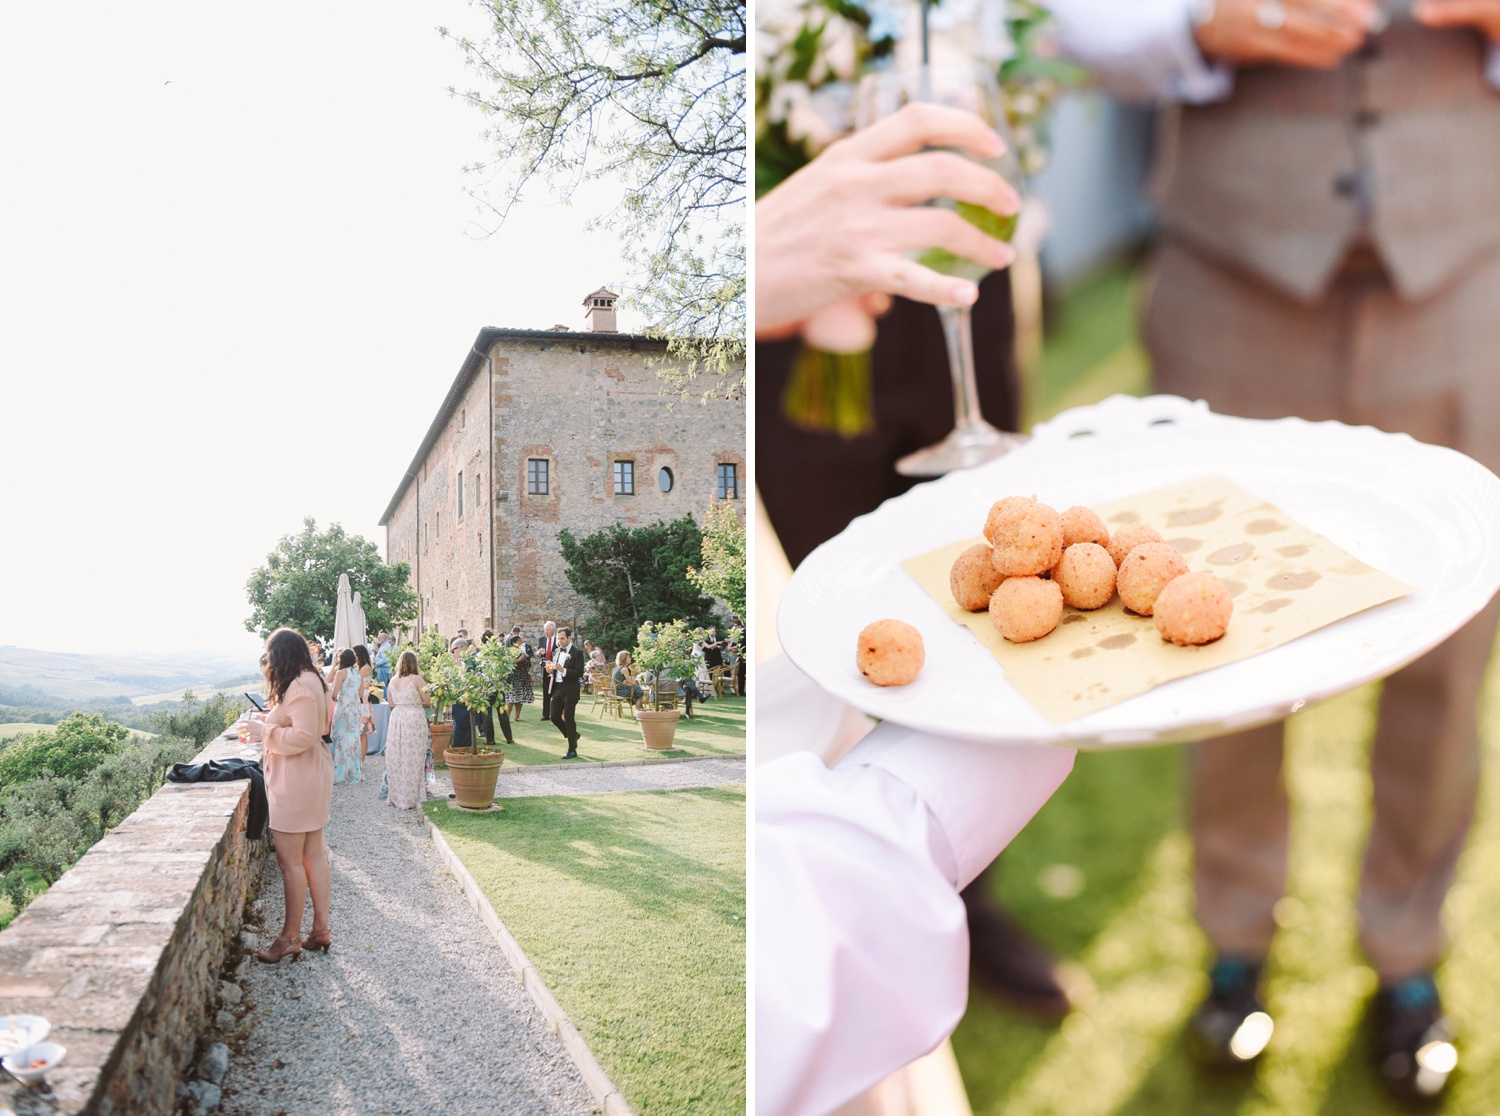 landvphotography_wedding_photographer_tuscany_0089.jpg